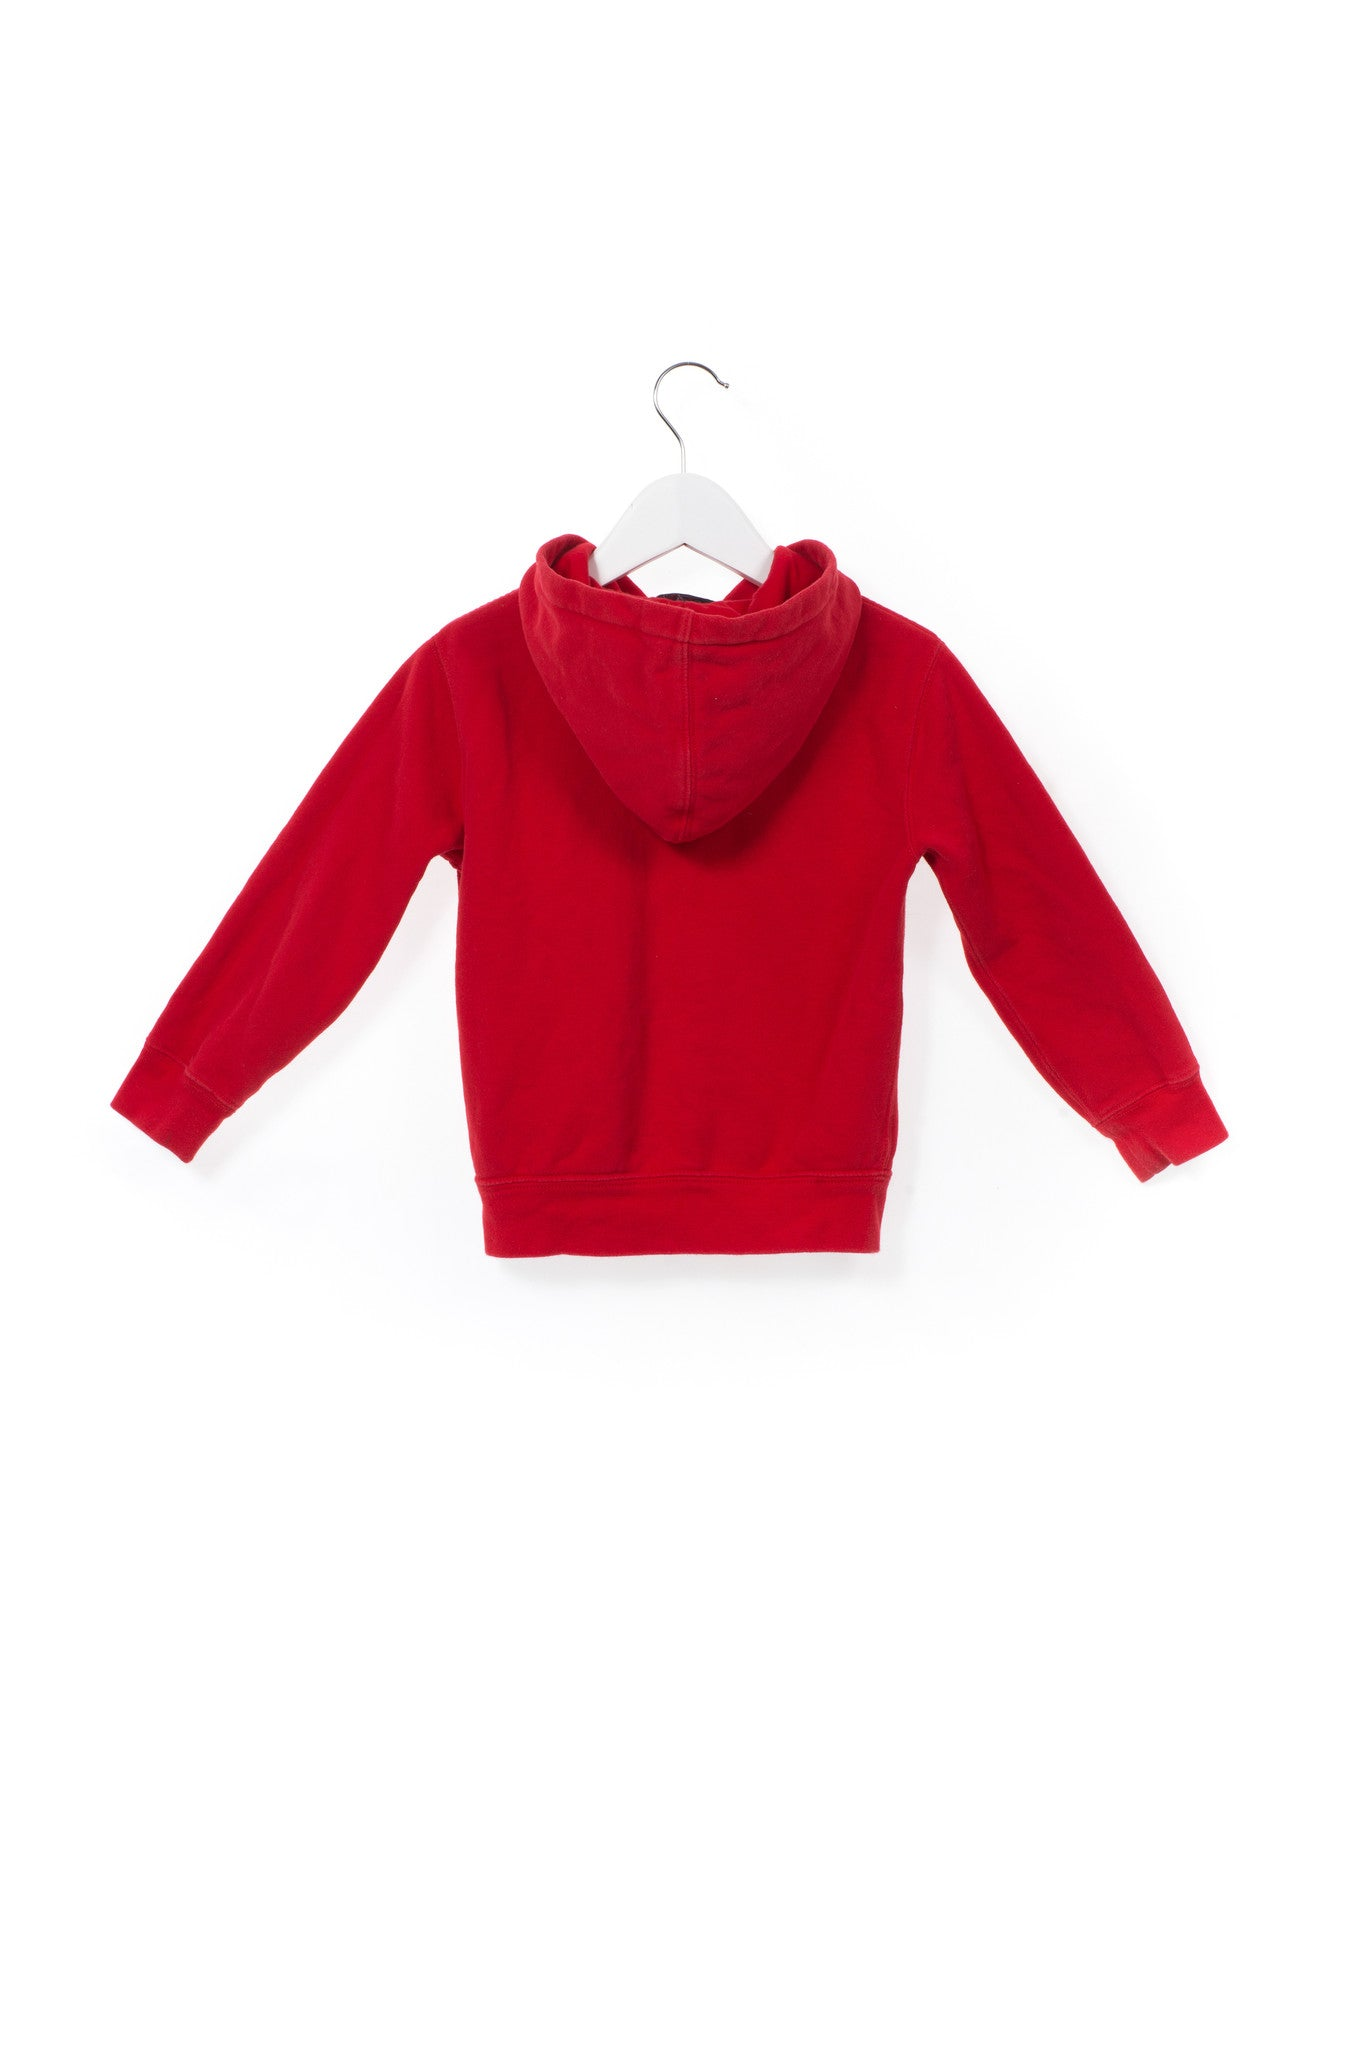 Sweatshirt 5T, Polo Ralph Lauren at Retykle - Online Baby & Kids Clothing Up to 90% Off